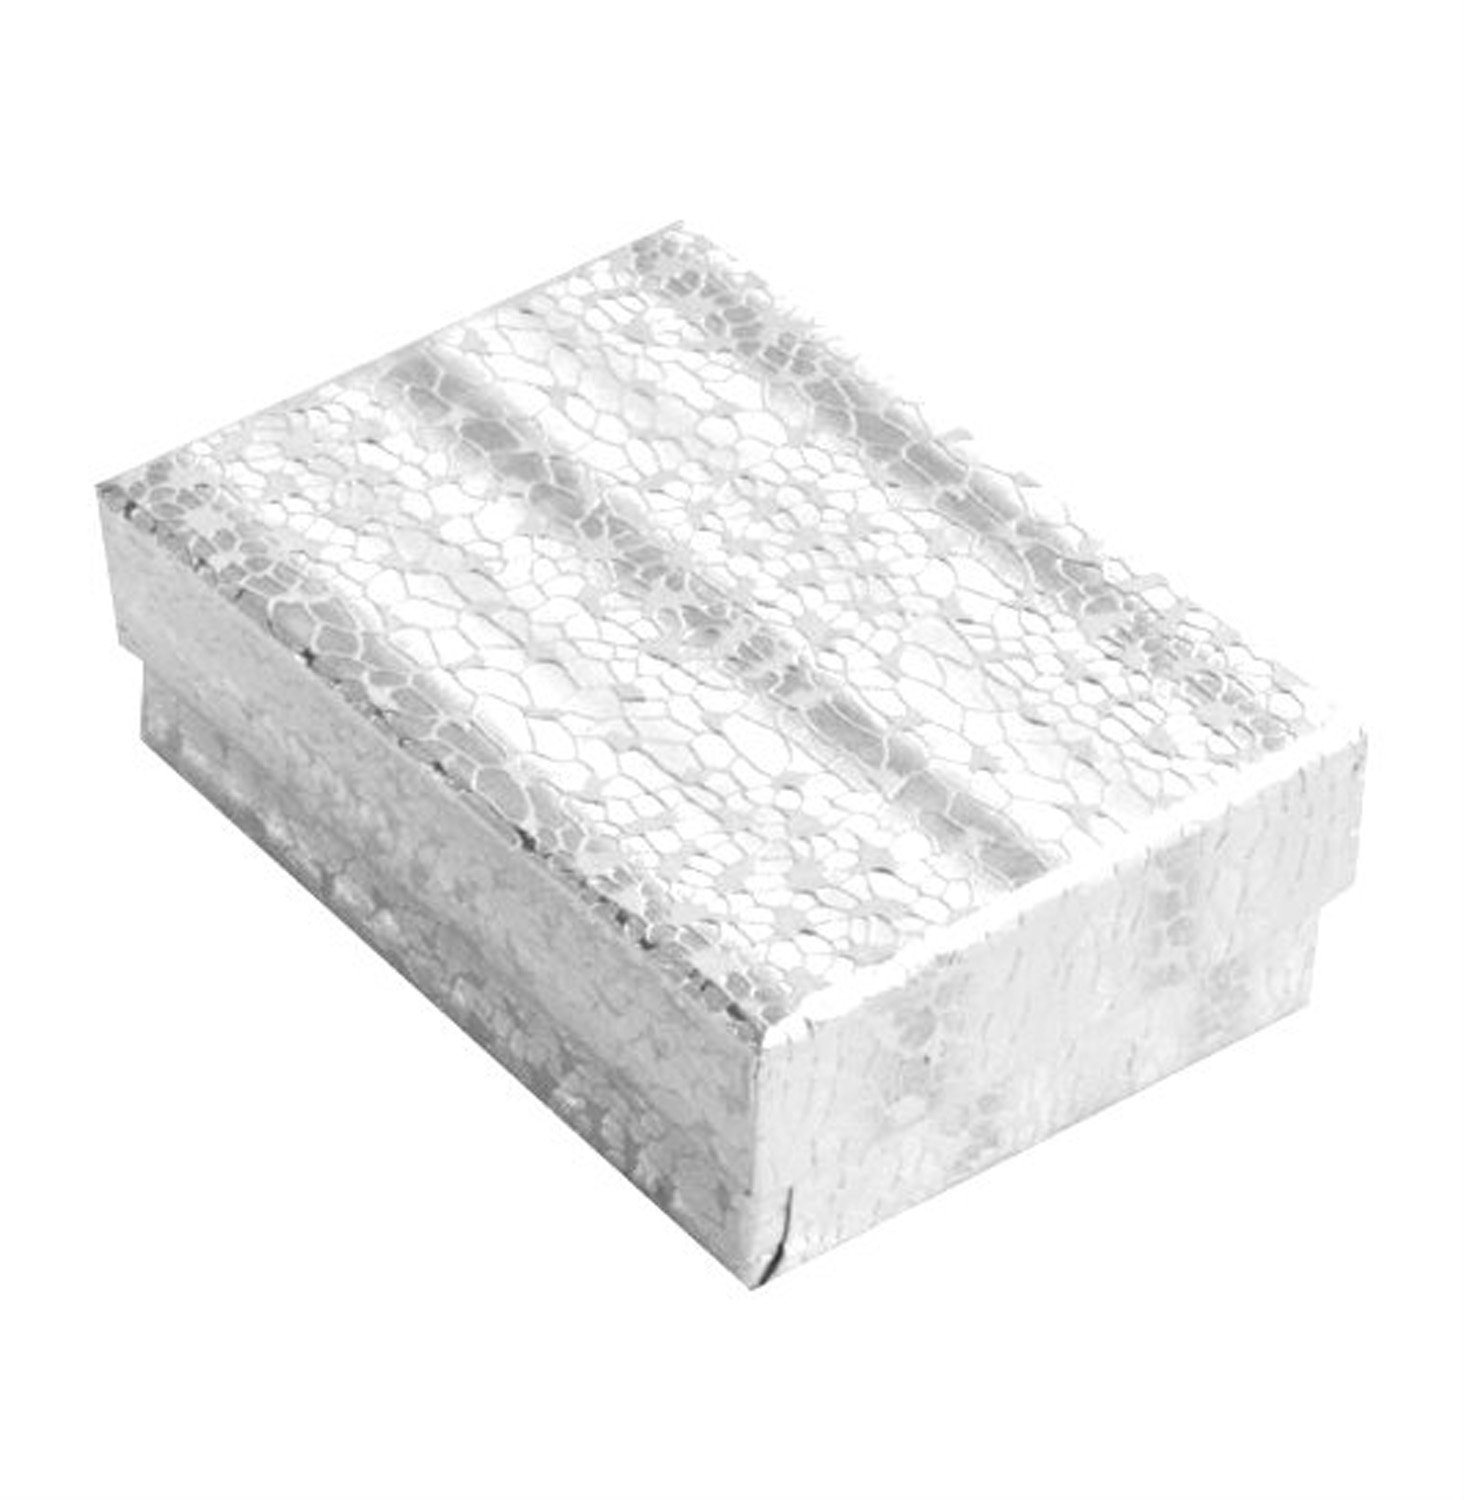 Lot of 100 pcs 3 1/4'' x 2 1/4'' x 1'' Silver Foil Cotton Filled Jewelry Boxes